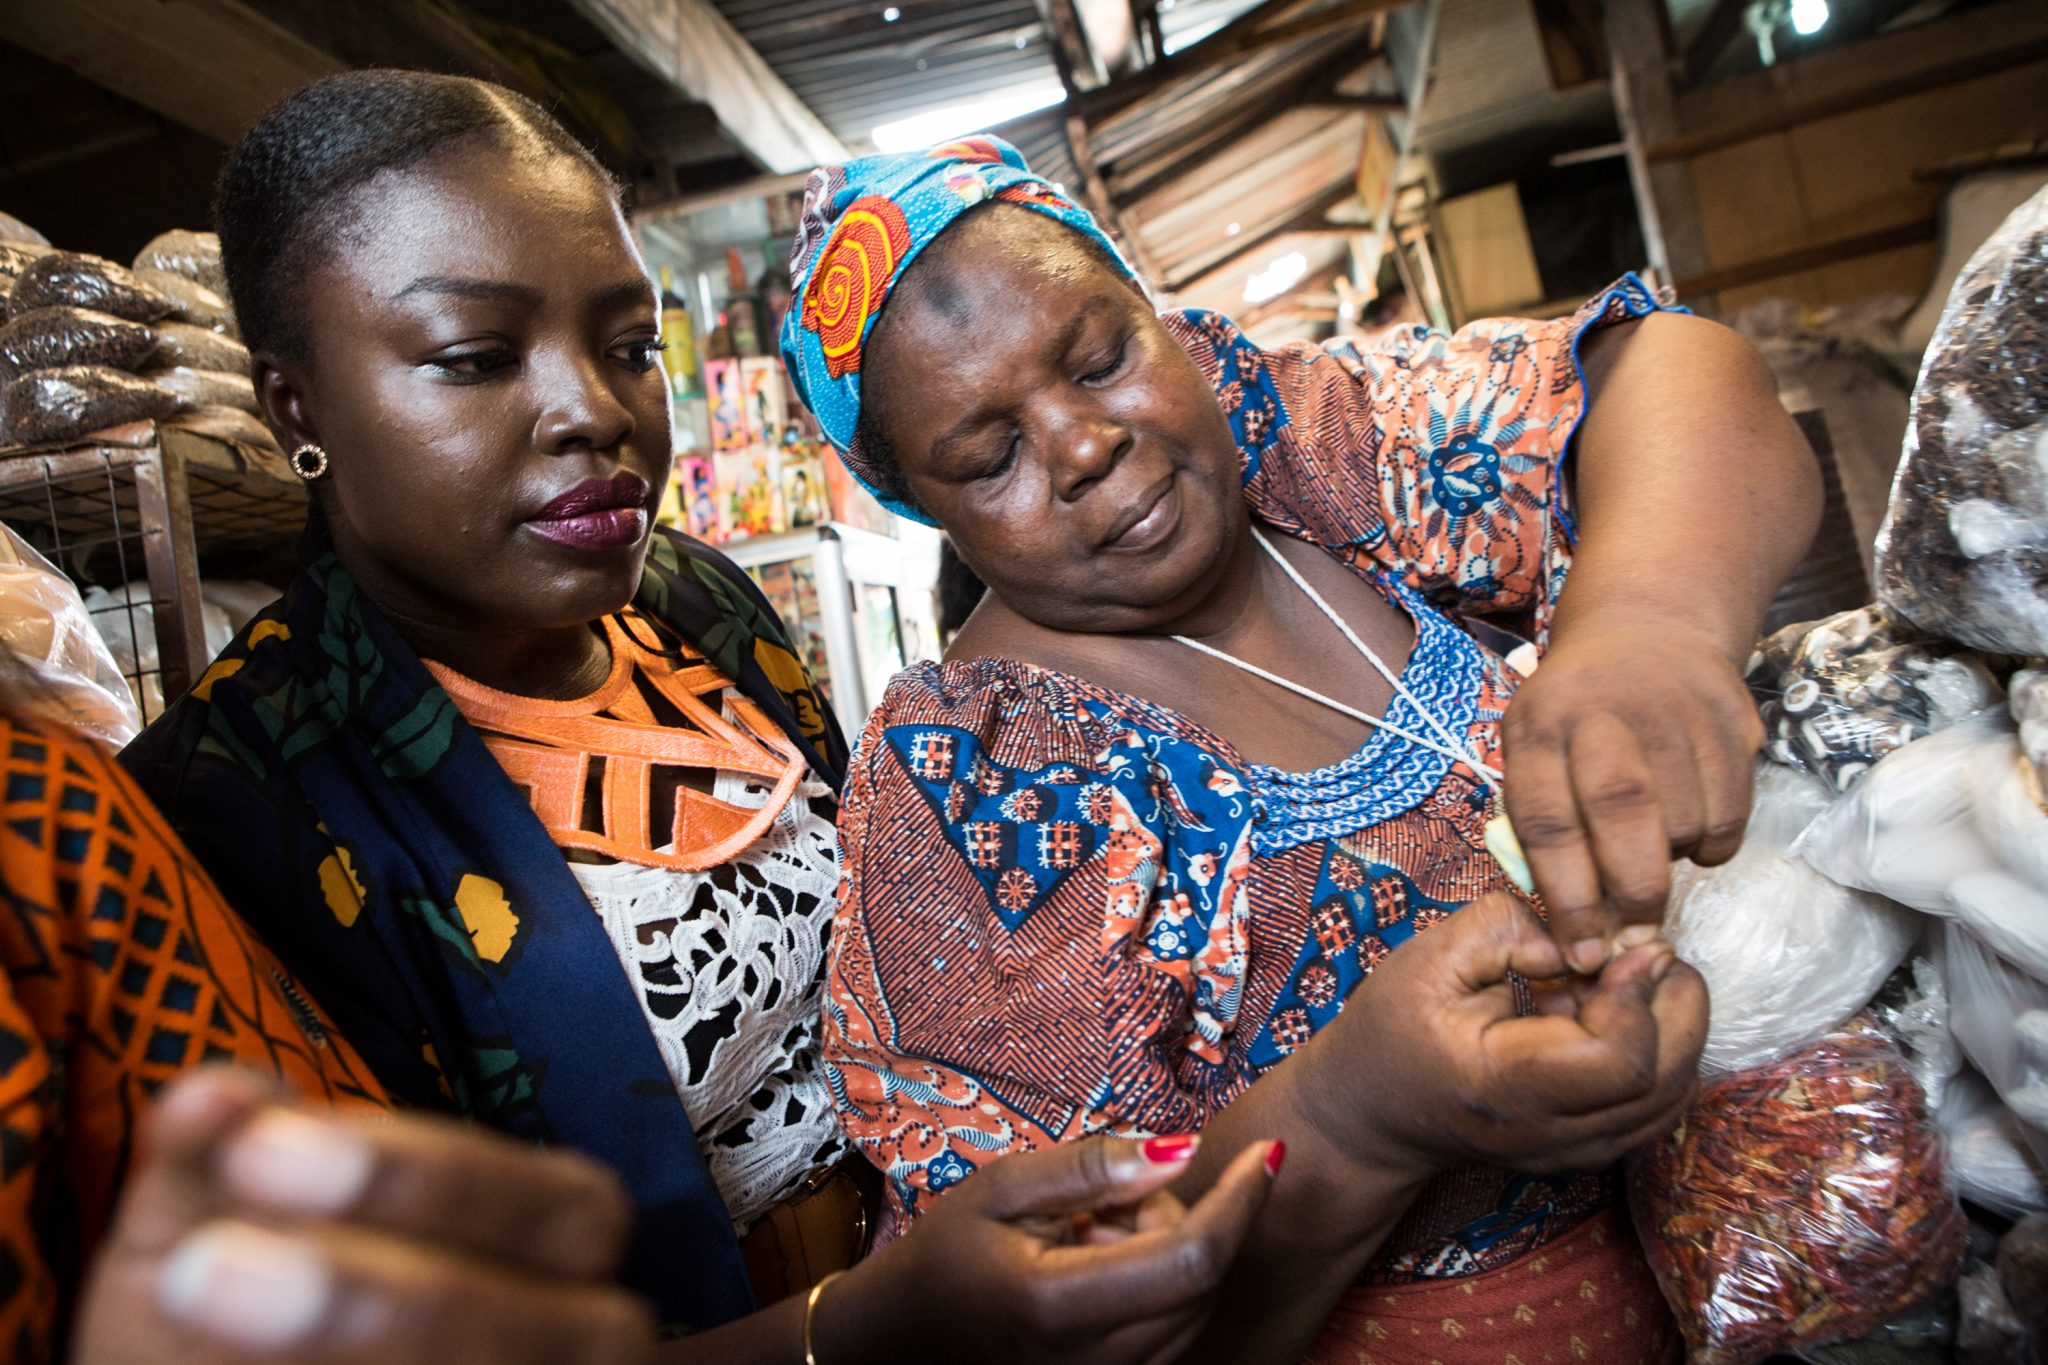 Essie Bartels buys spices from her seller Aisha Ibrahim at the Makola market in Accra, on January 25, 2017. It took a move to the United States from Ghana to convince food entrepreneur Essie Bartels that the world deserved to know more about west African cuisine. Bartels saw a gap in the market and dedicated herself to creating sauces and spice blends inspired by her childhood in Ghana's capital, Accra, through her company Essie Spice. / AFP PHOTO / Ruth McDowall